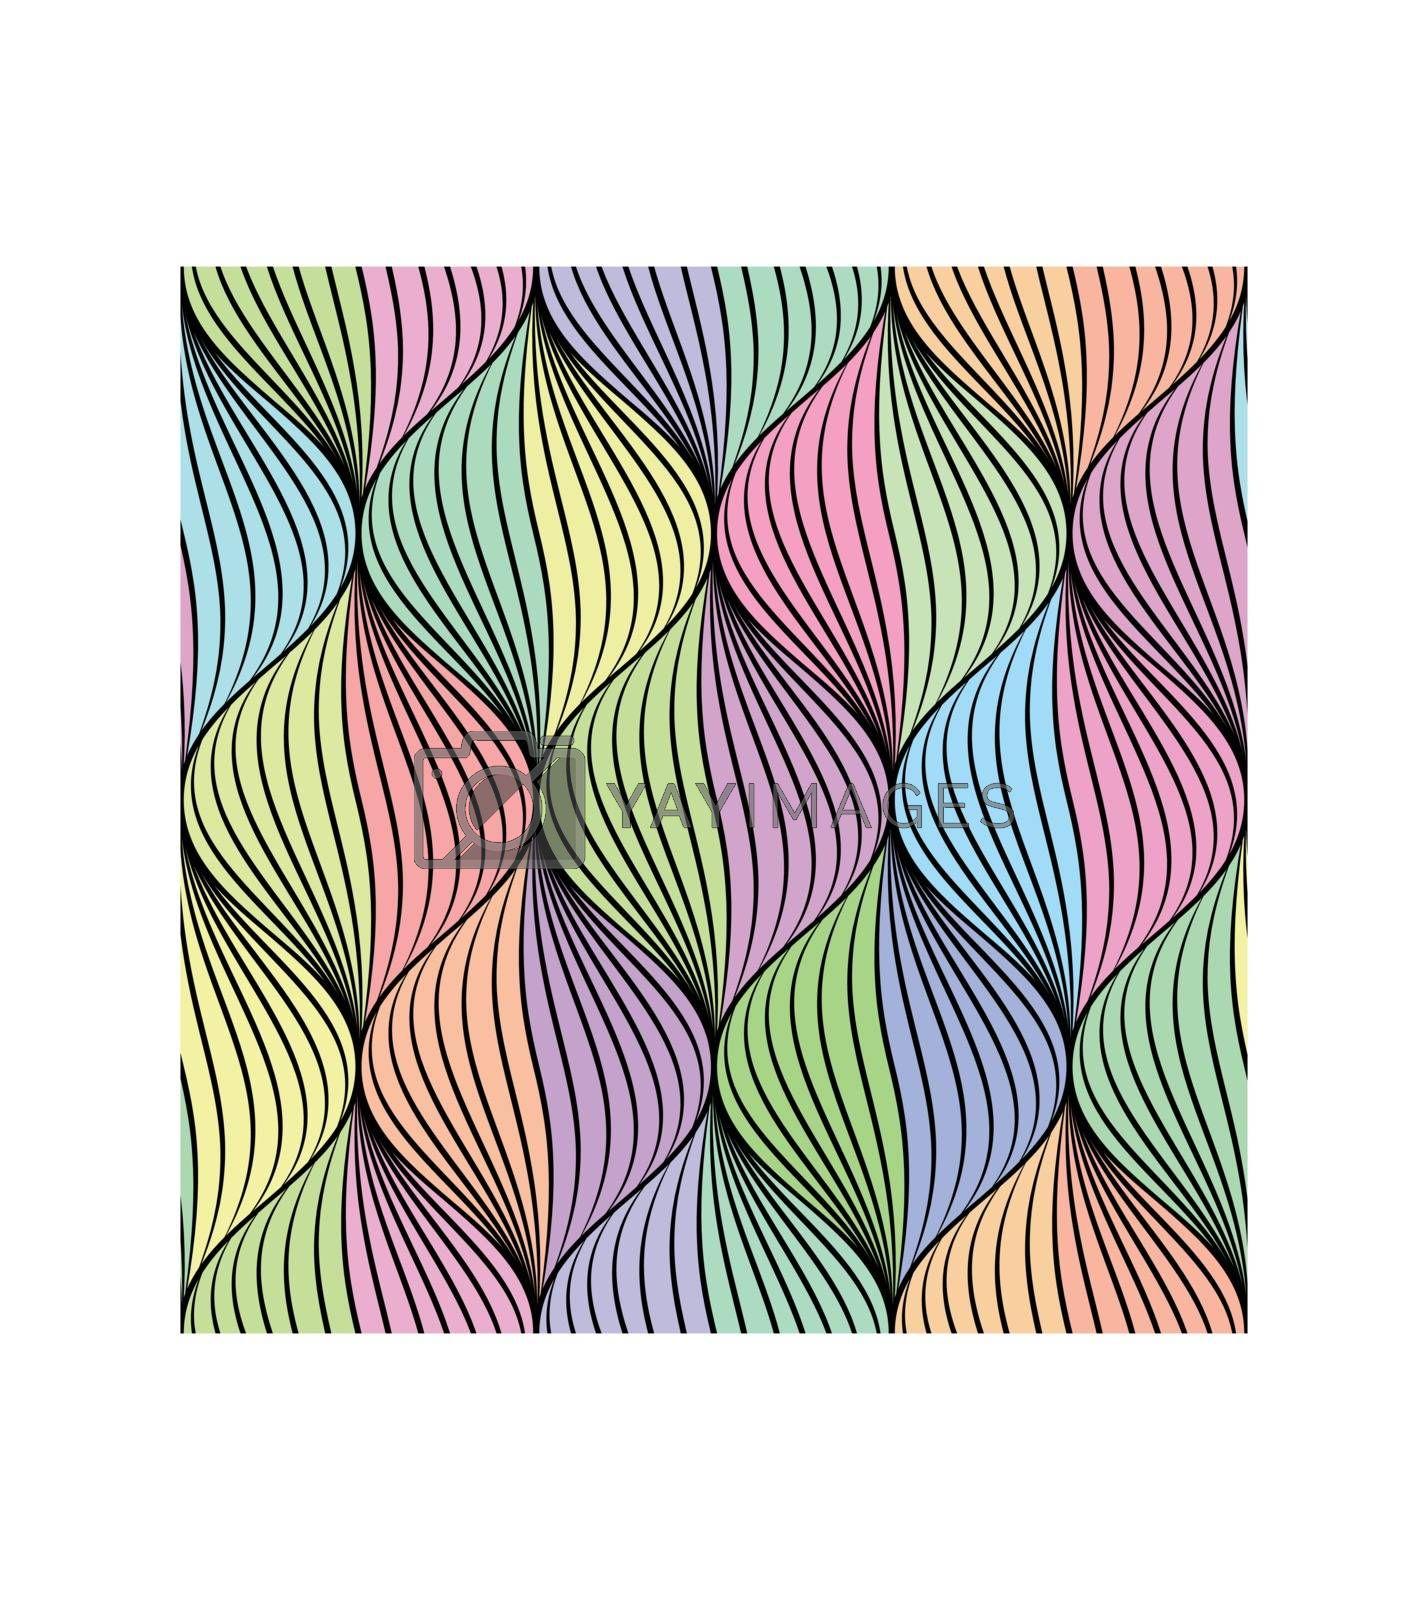 Abstract braid seamless pattern in colorful tone.